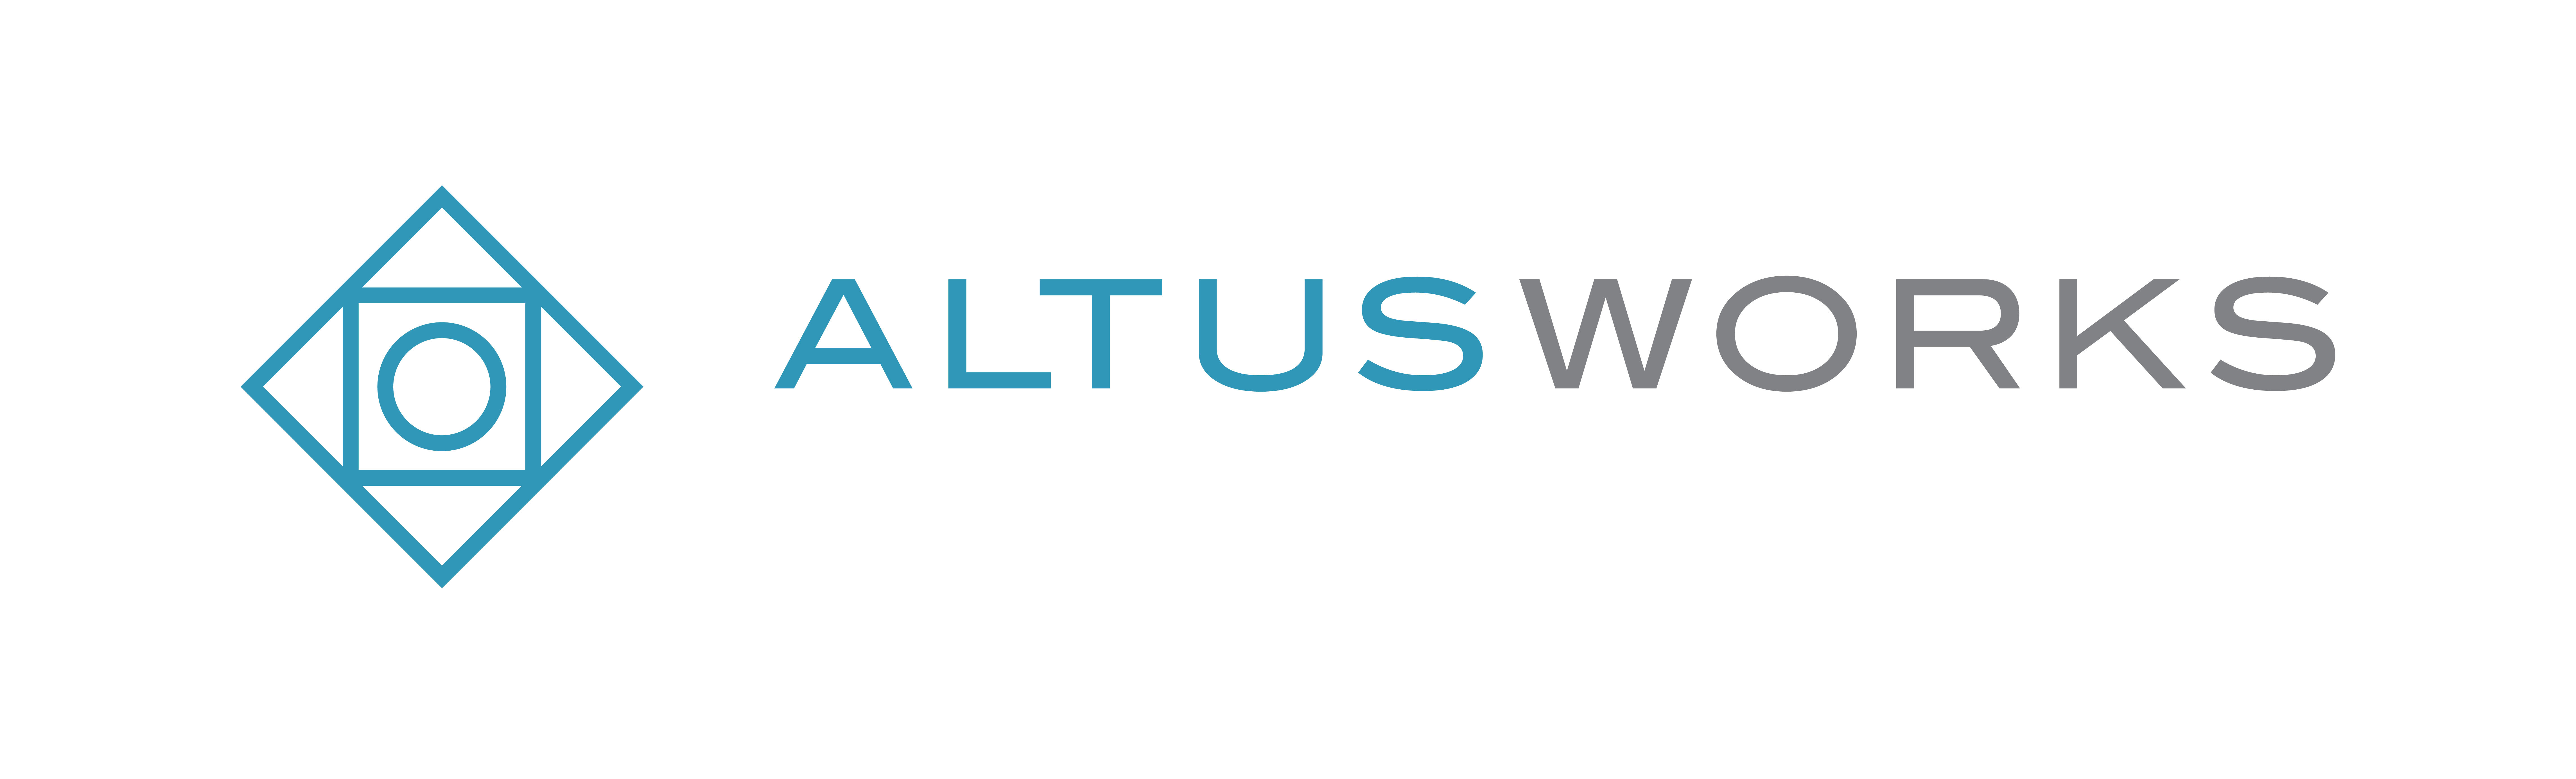 AltusWorks Architecture, Inc.